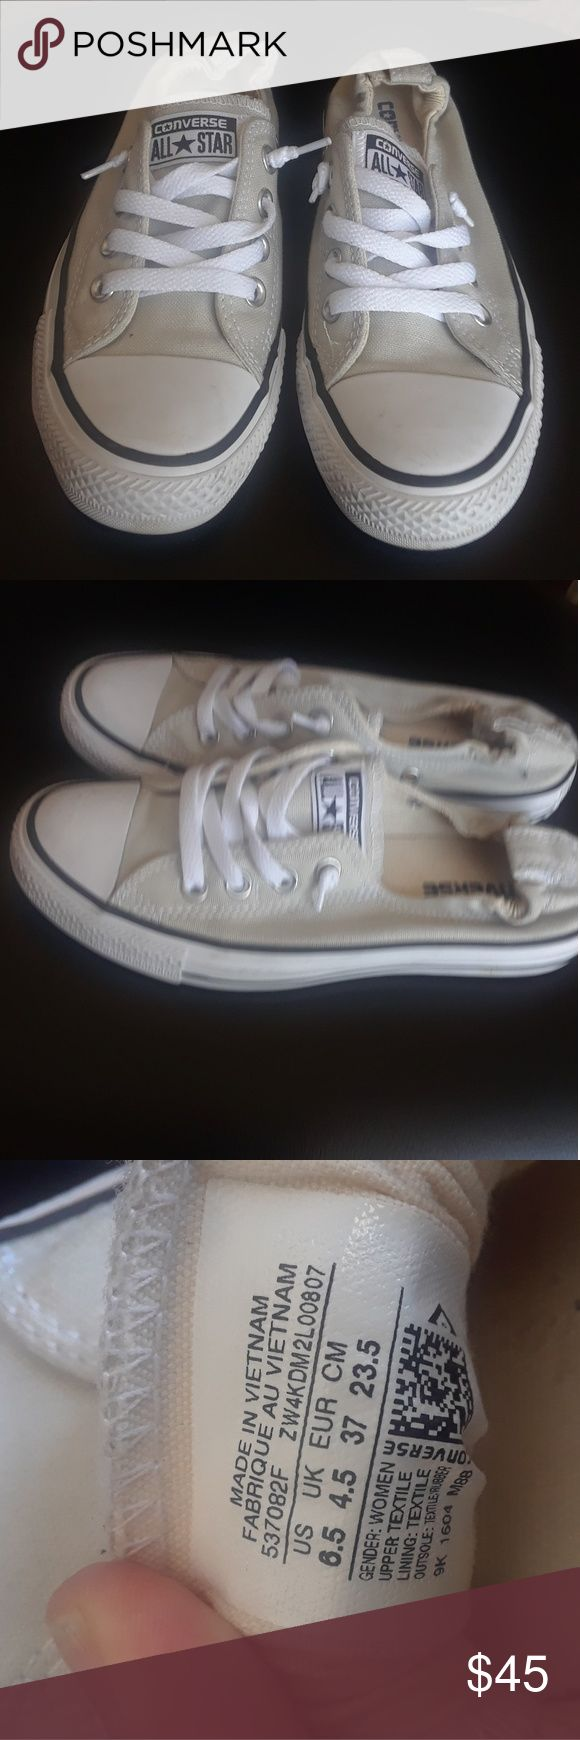 Converse  shoreline  sneaker size 6-5 nude nwt CRIPTION The Converse All Star Shoreline Slip shoe provides both comfort in a fashionable feminine fit. Breathable canvas upper with an elastic strap support underneath the tongue for a nice snug fit.A cushioned canvas liner and footbed offer all day   sz 6-5 brand new was display model so it has been tried on in the store sorry no box not taking any trades up to all offers Converse Shoes Sneakers